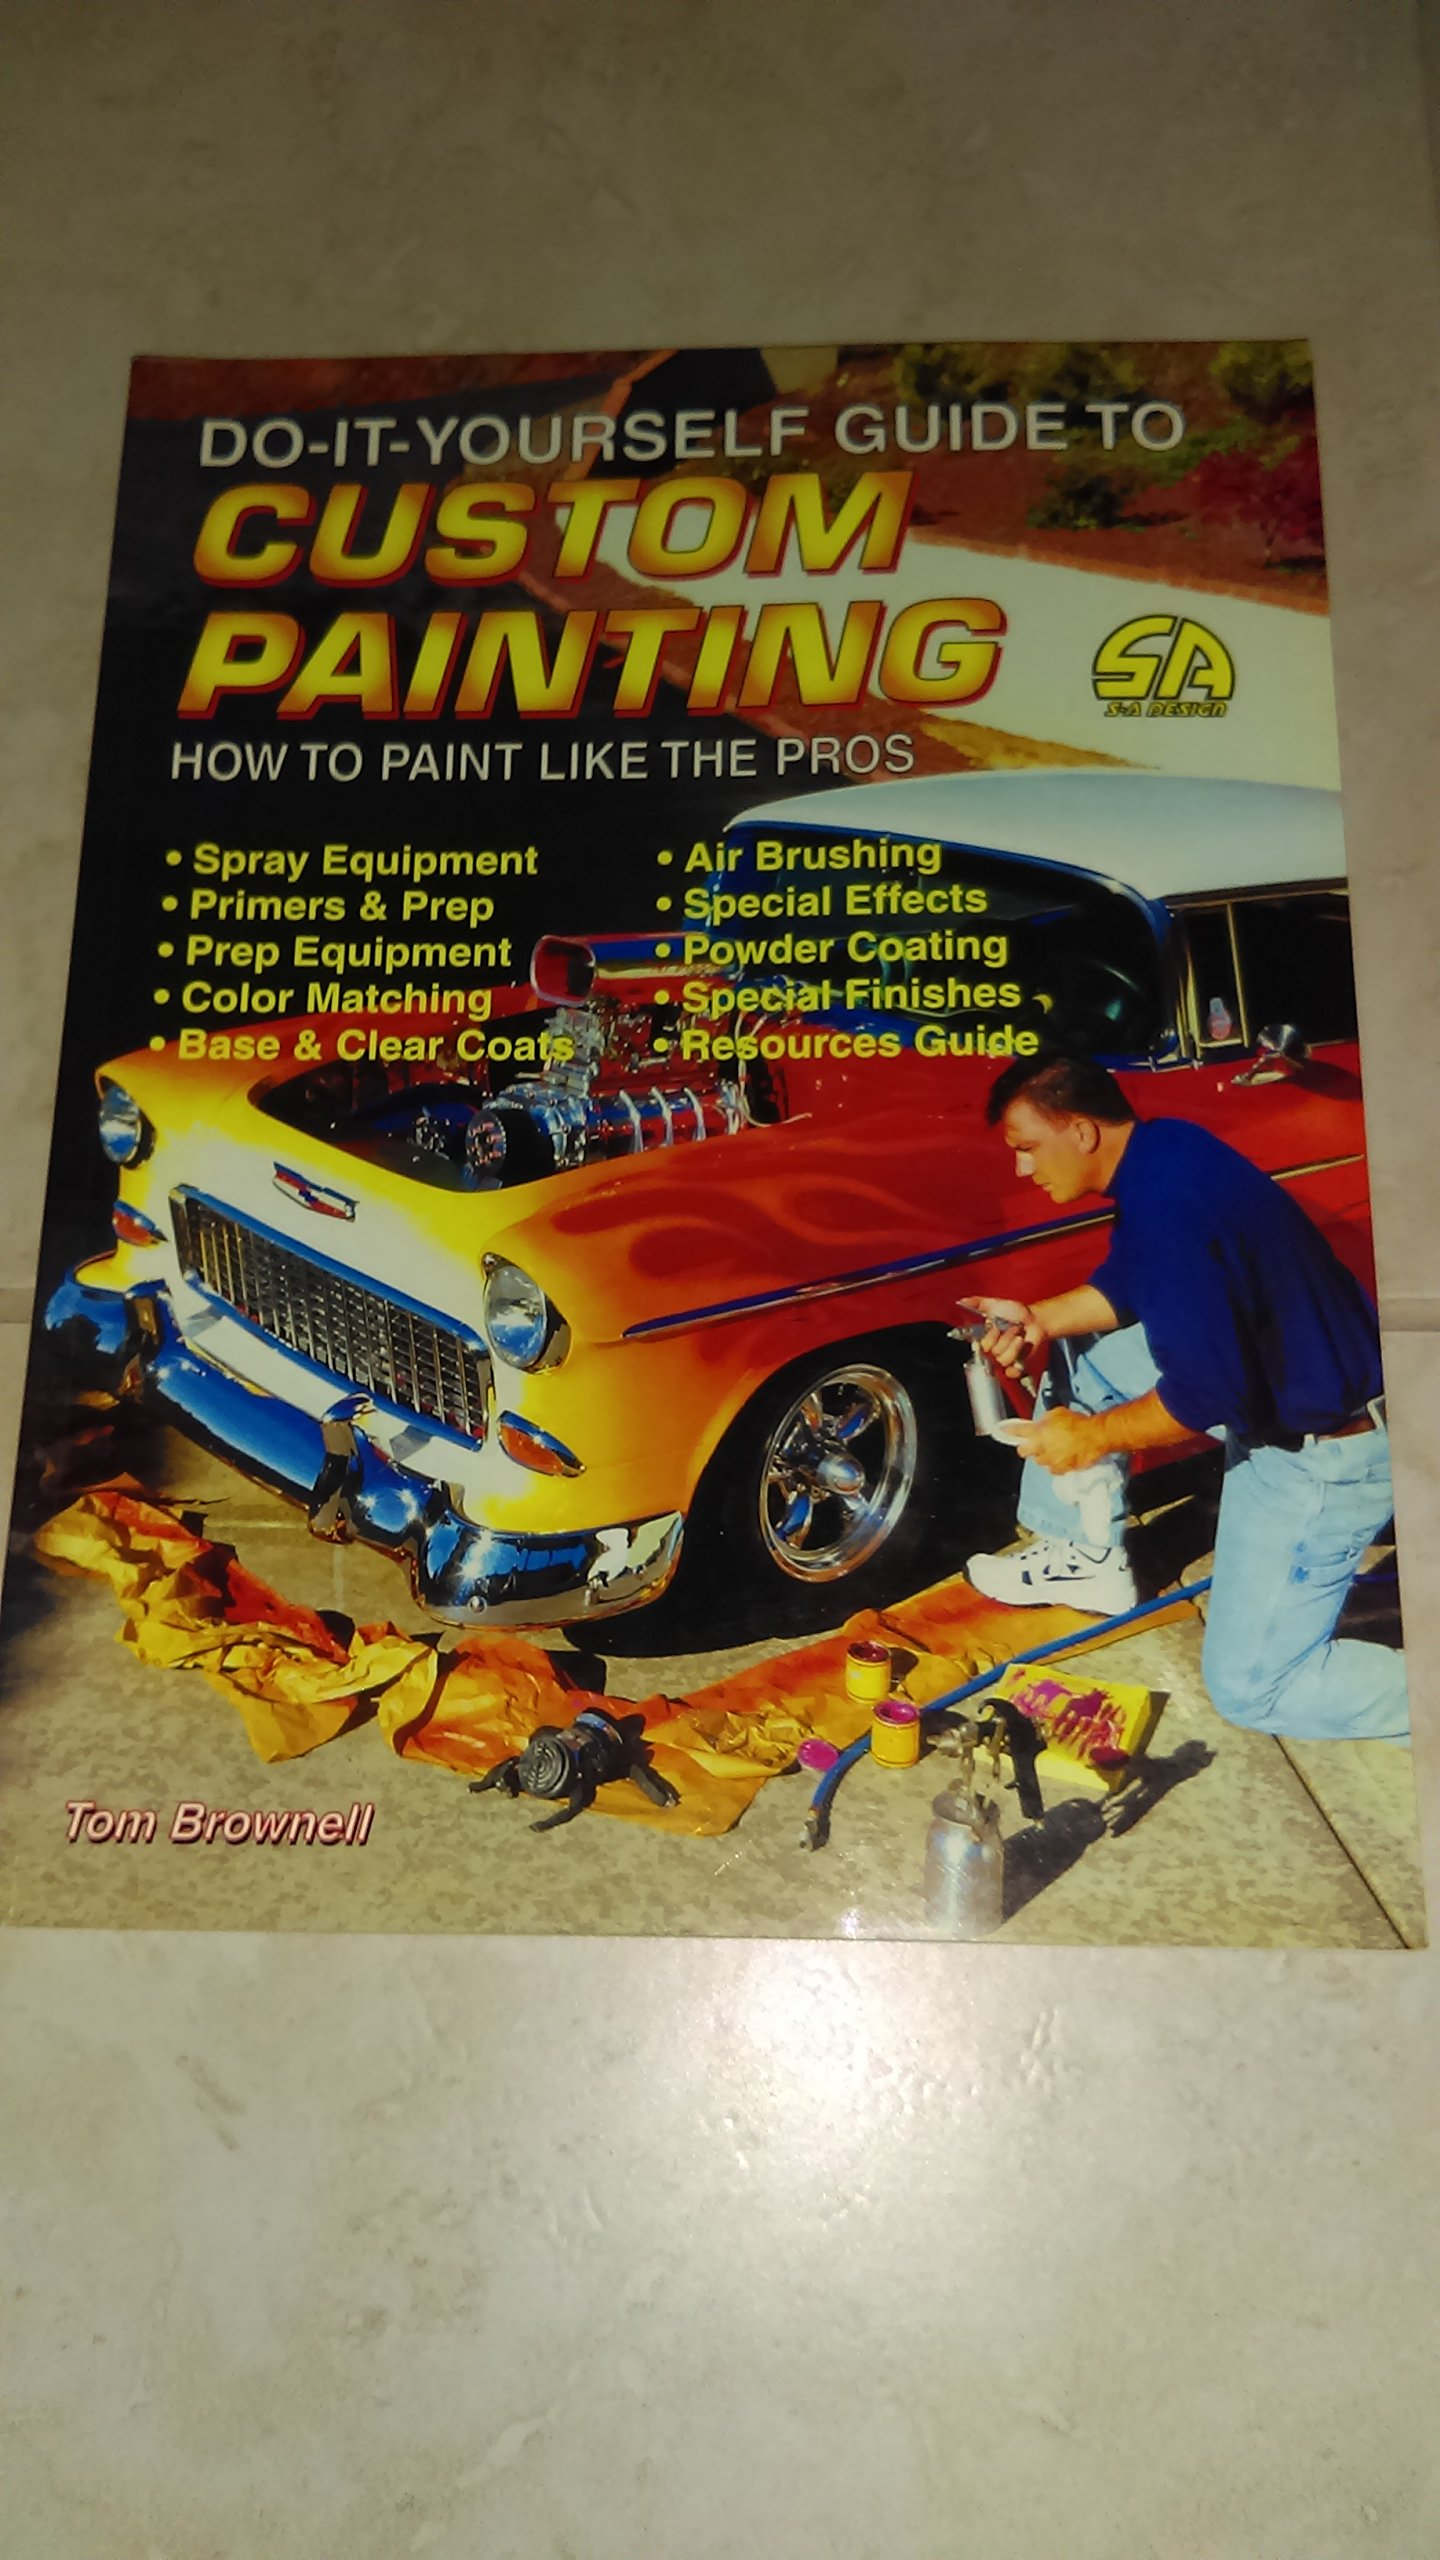 Do it yourself guide to custom painting do it yourself guides for do it yourself guide to custom painting do it yourself guides for car enthusiasts amazon tom brownell 0601784000103 books solutioingenieria Gallery